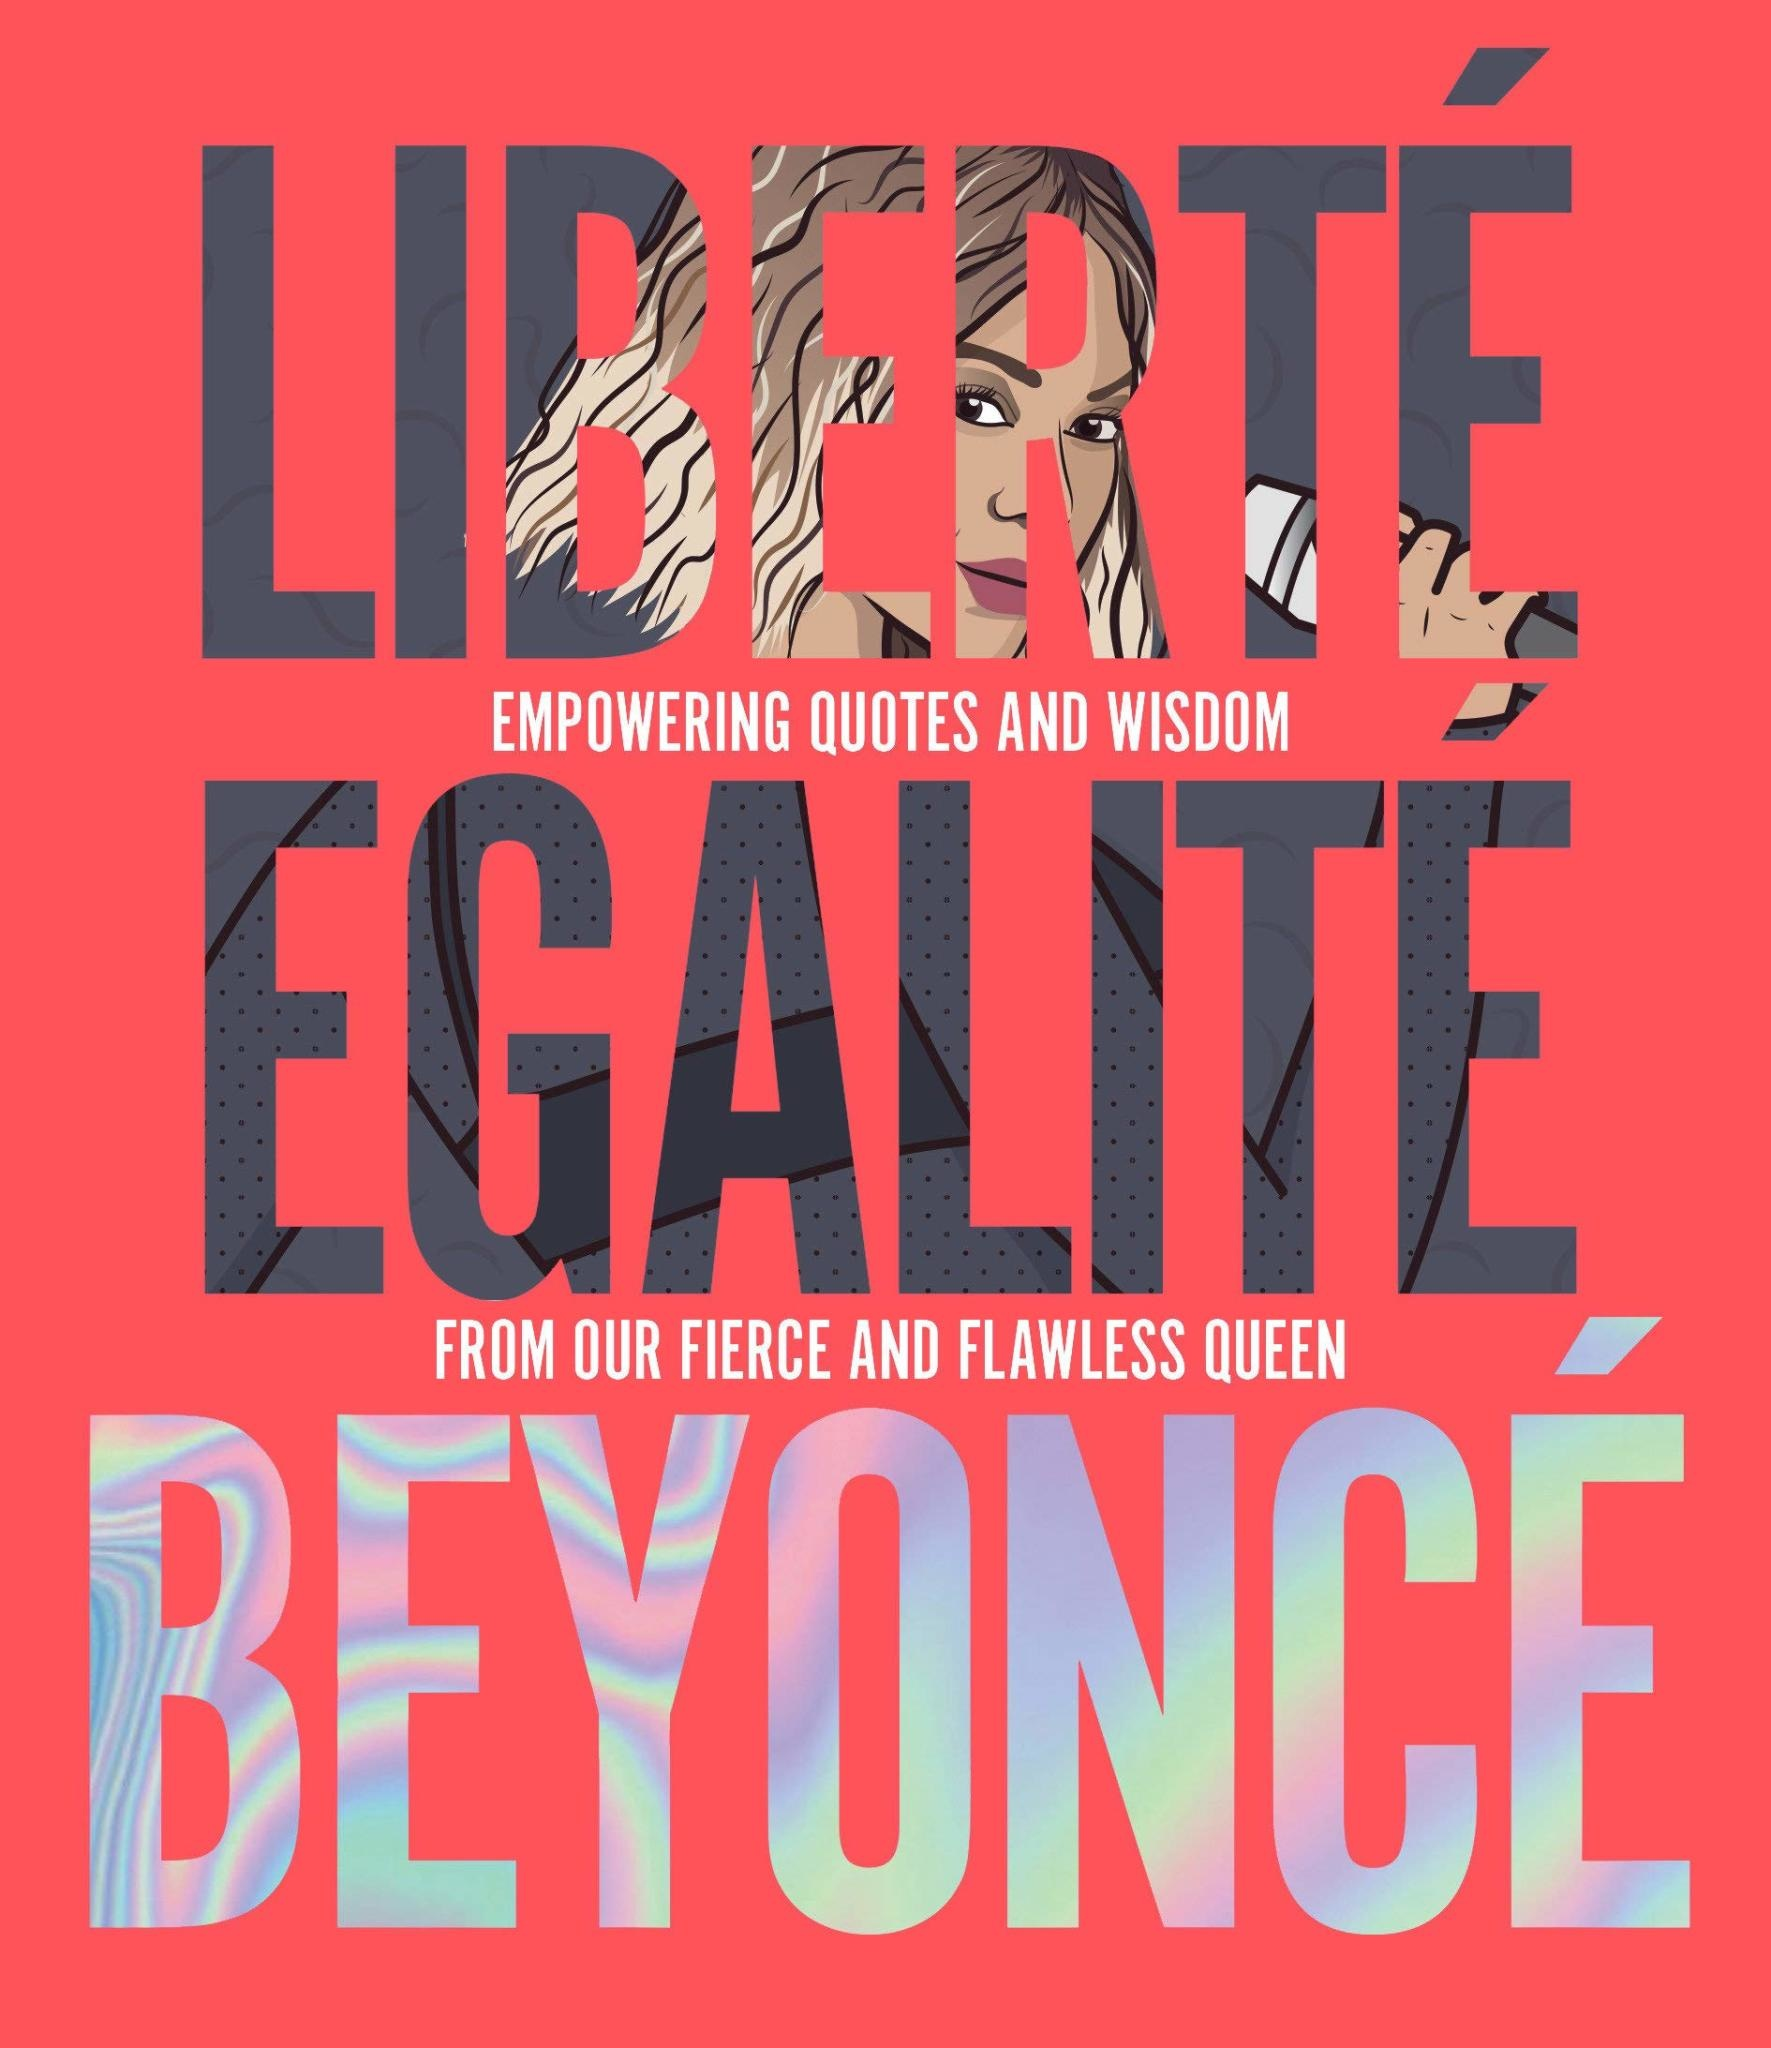 Gift Liberté, Egalité: Empowering Quotes And Wisdom From Our Fierce And Flawless Queen - Beyoncé